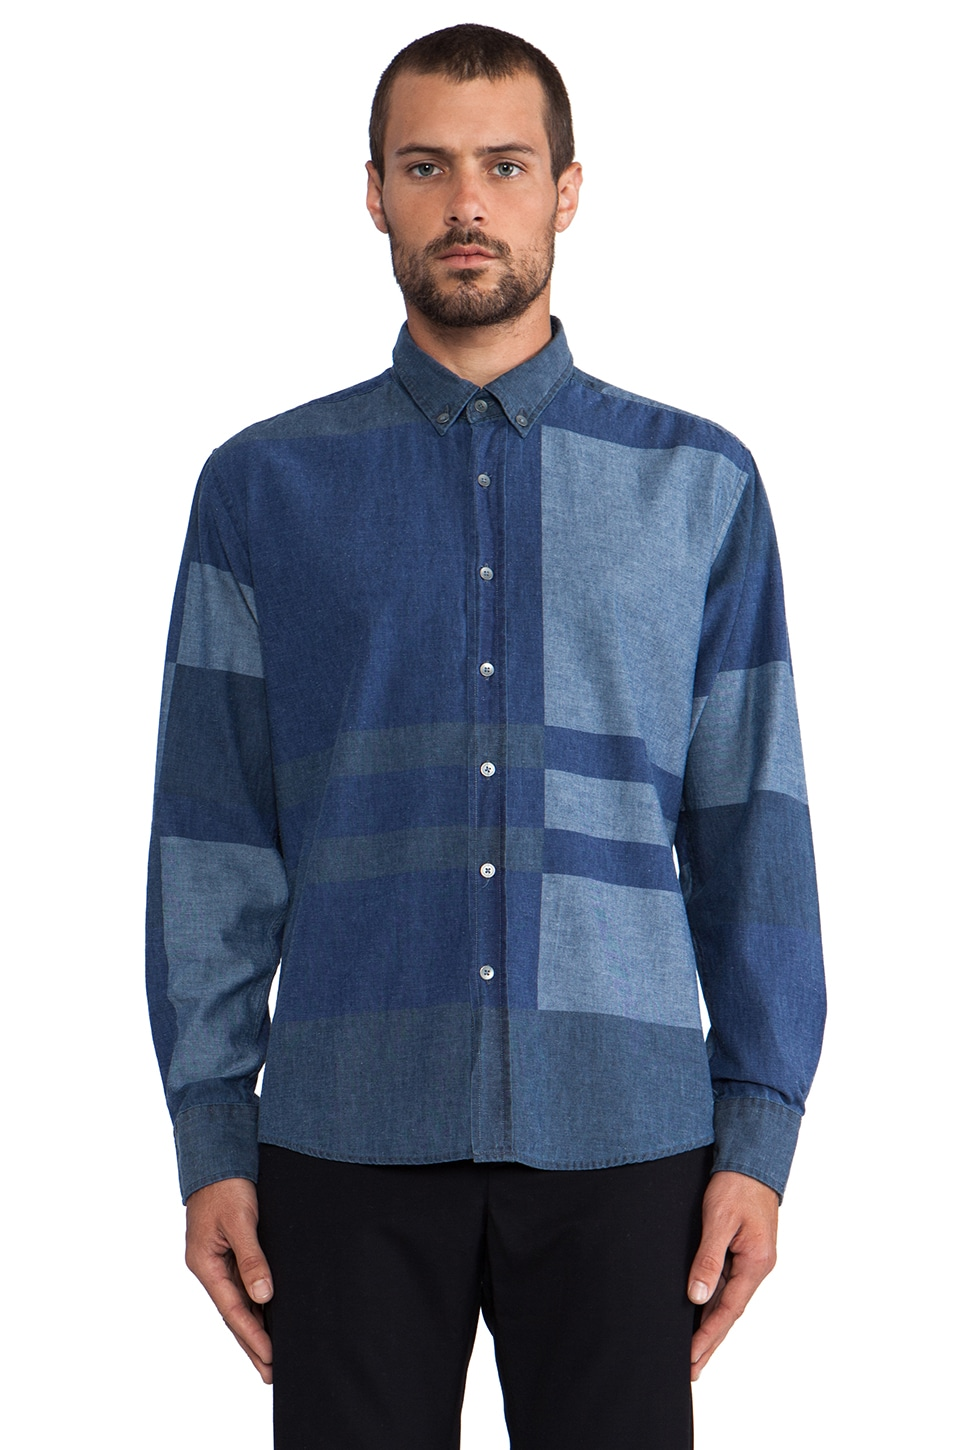 WRK Portland Shirt in Blue Plaid